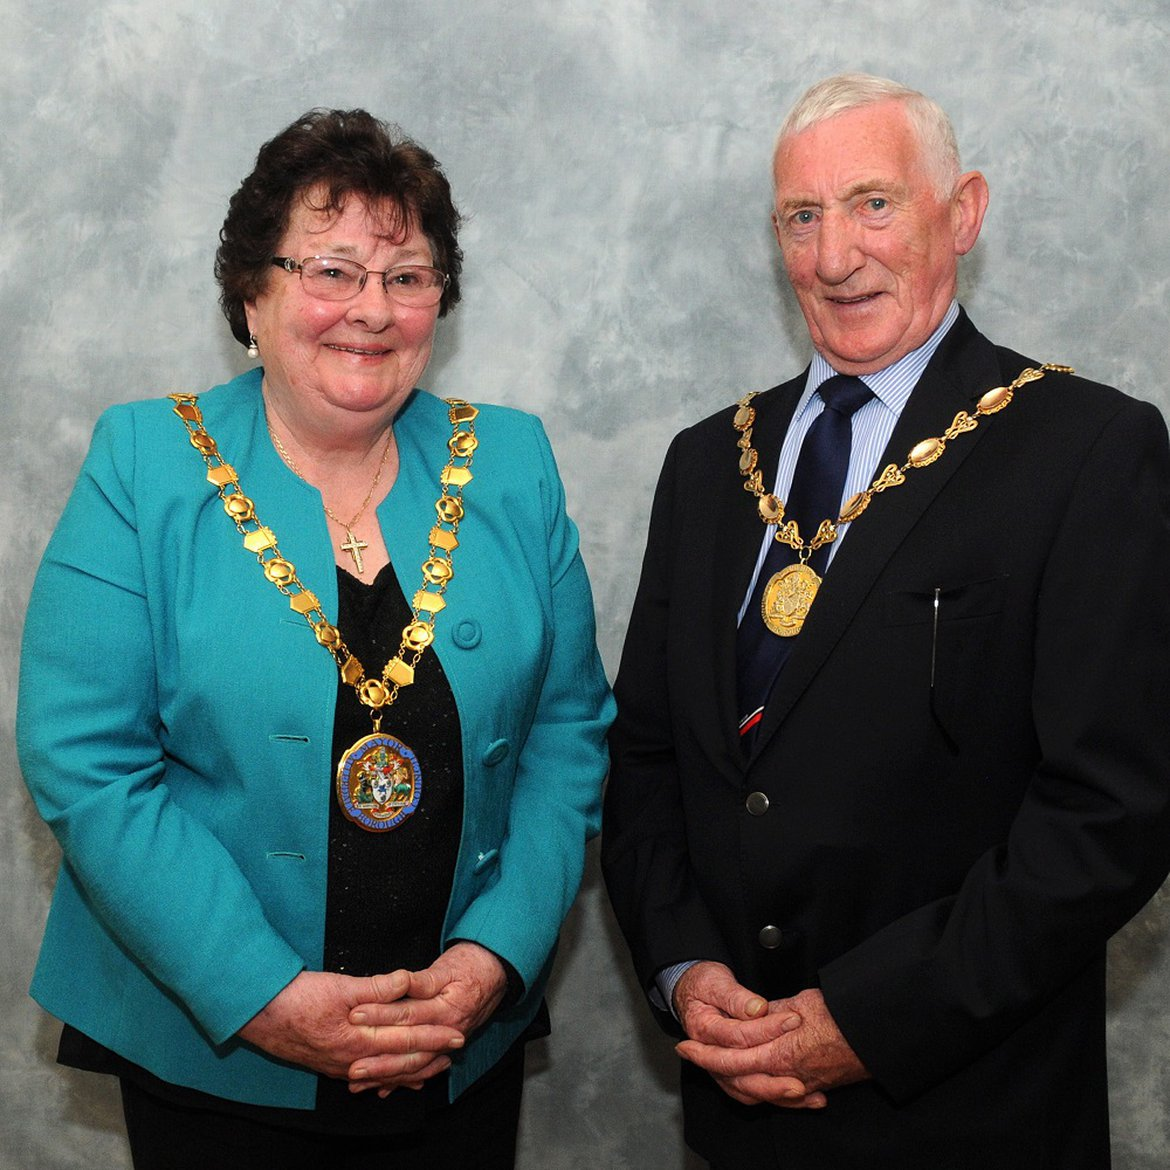 Mayor and Deputy Mayor Cllr Hilary Harrington and Cllr Malcolm Grainger